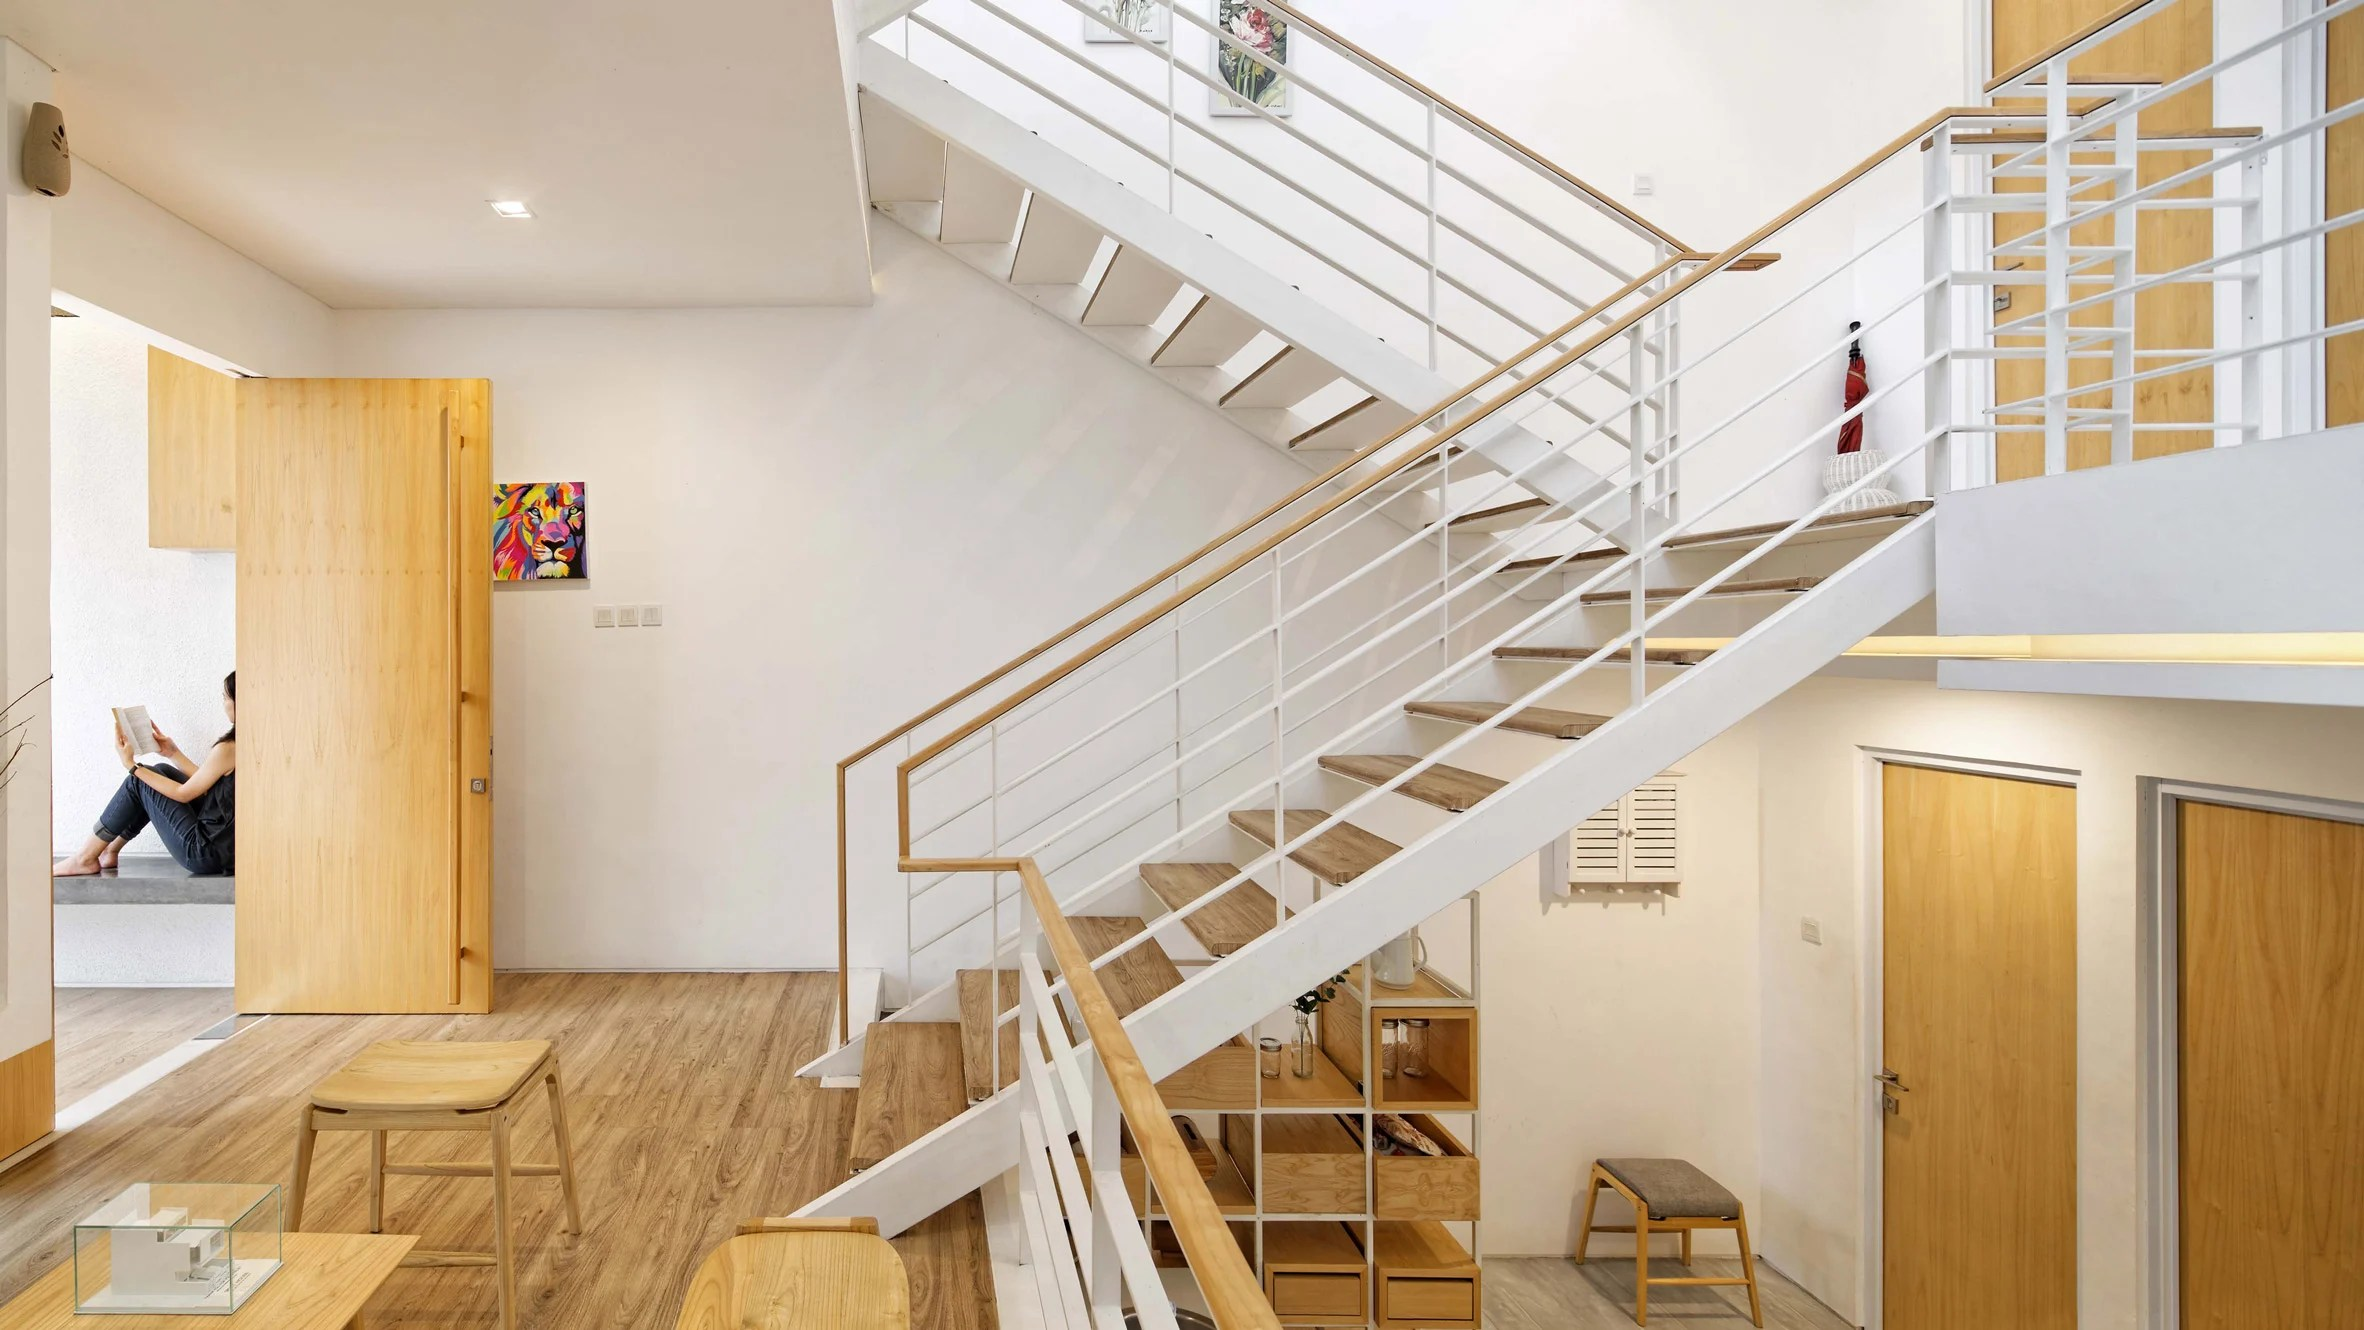 Multiple mezzanines are connected by an open stair in